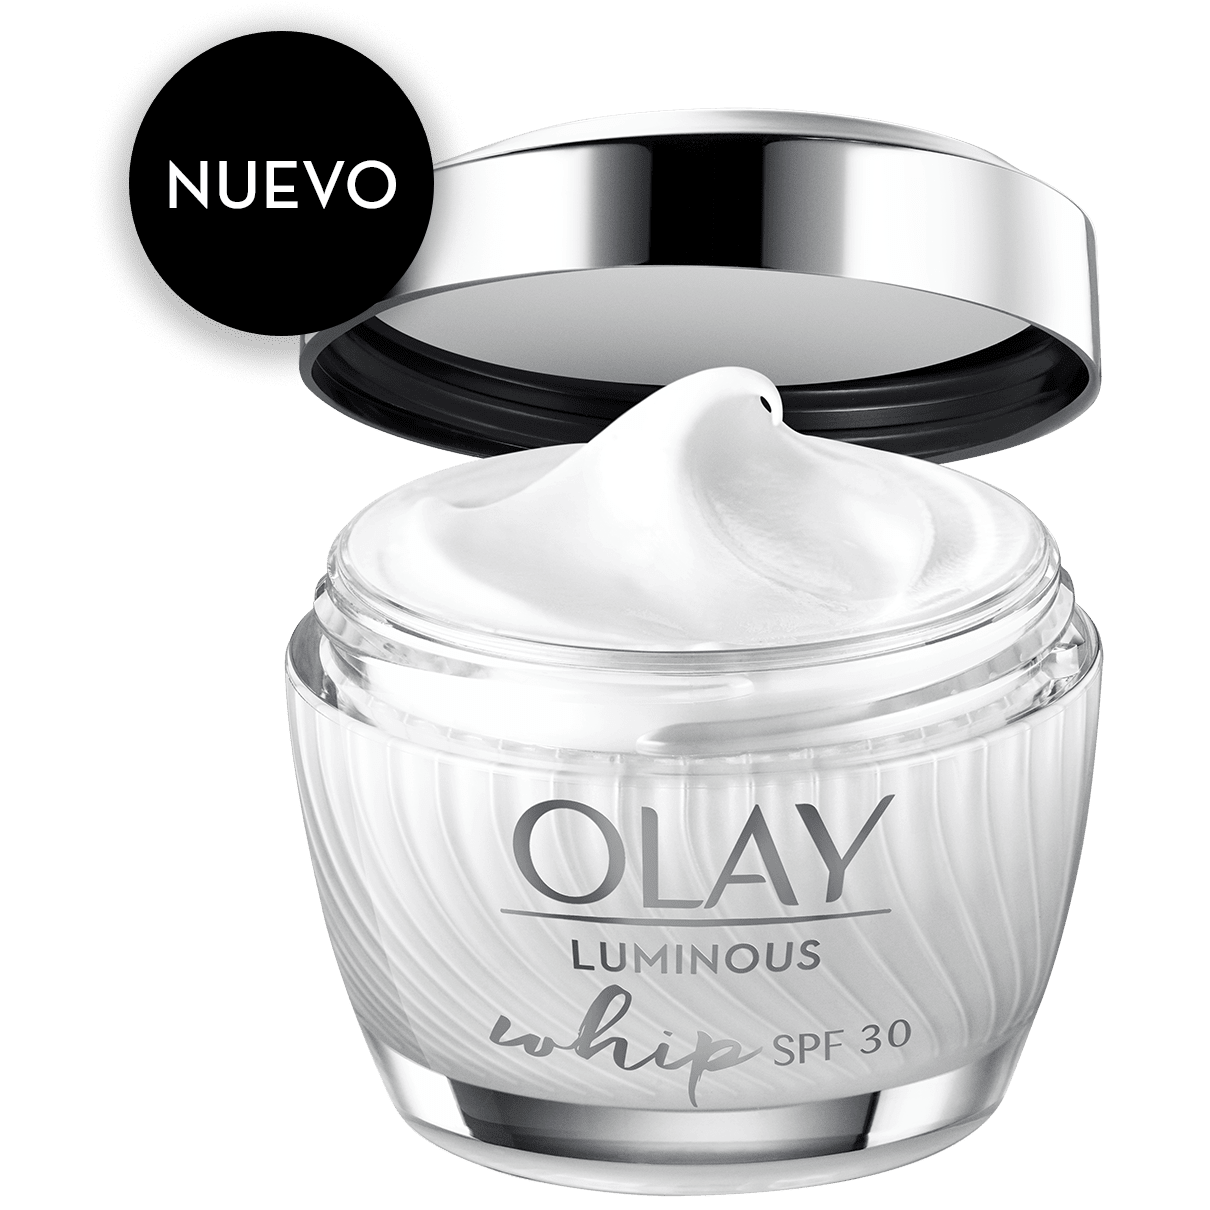 Olay Luminous Whip SPF 30 Cream 50 ml